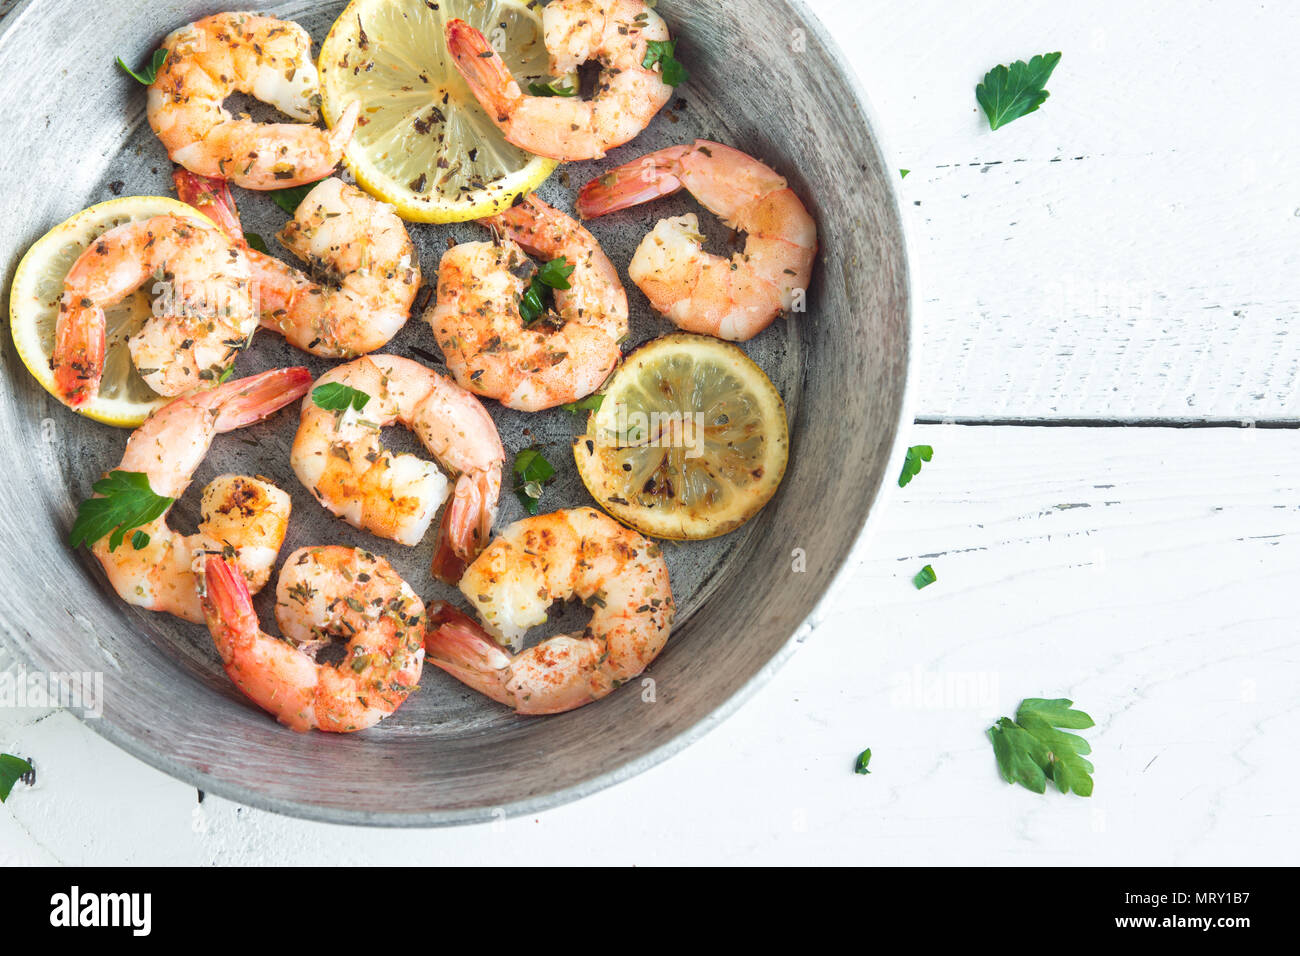 Roasted shrimps with lemon, garlic and herbs. Seafood, shelfish. Shrimps Prawns grilled with spices, garlic and lemon on white background, copy space. - Stock Image